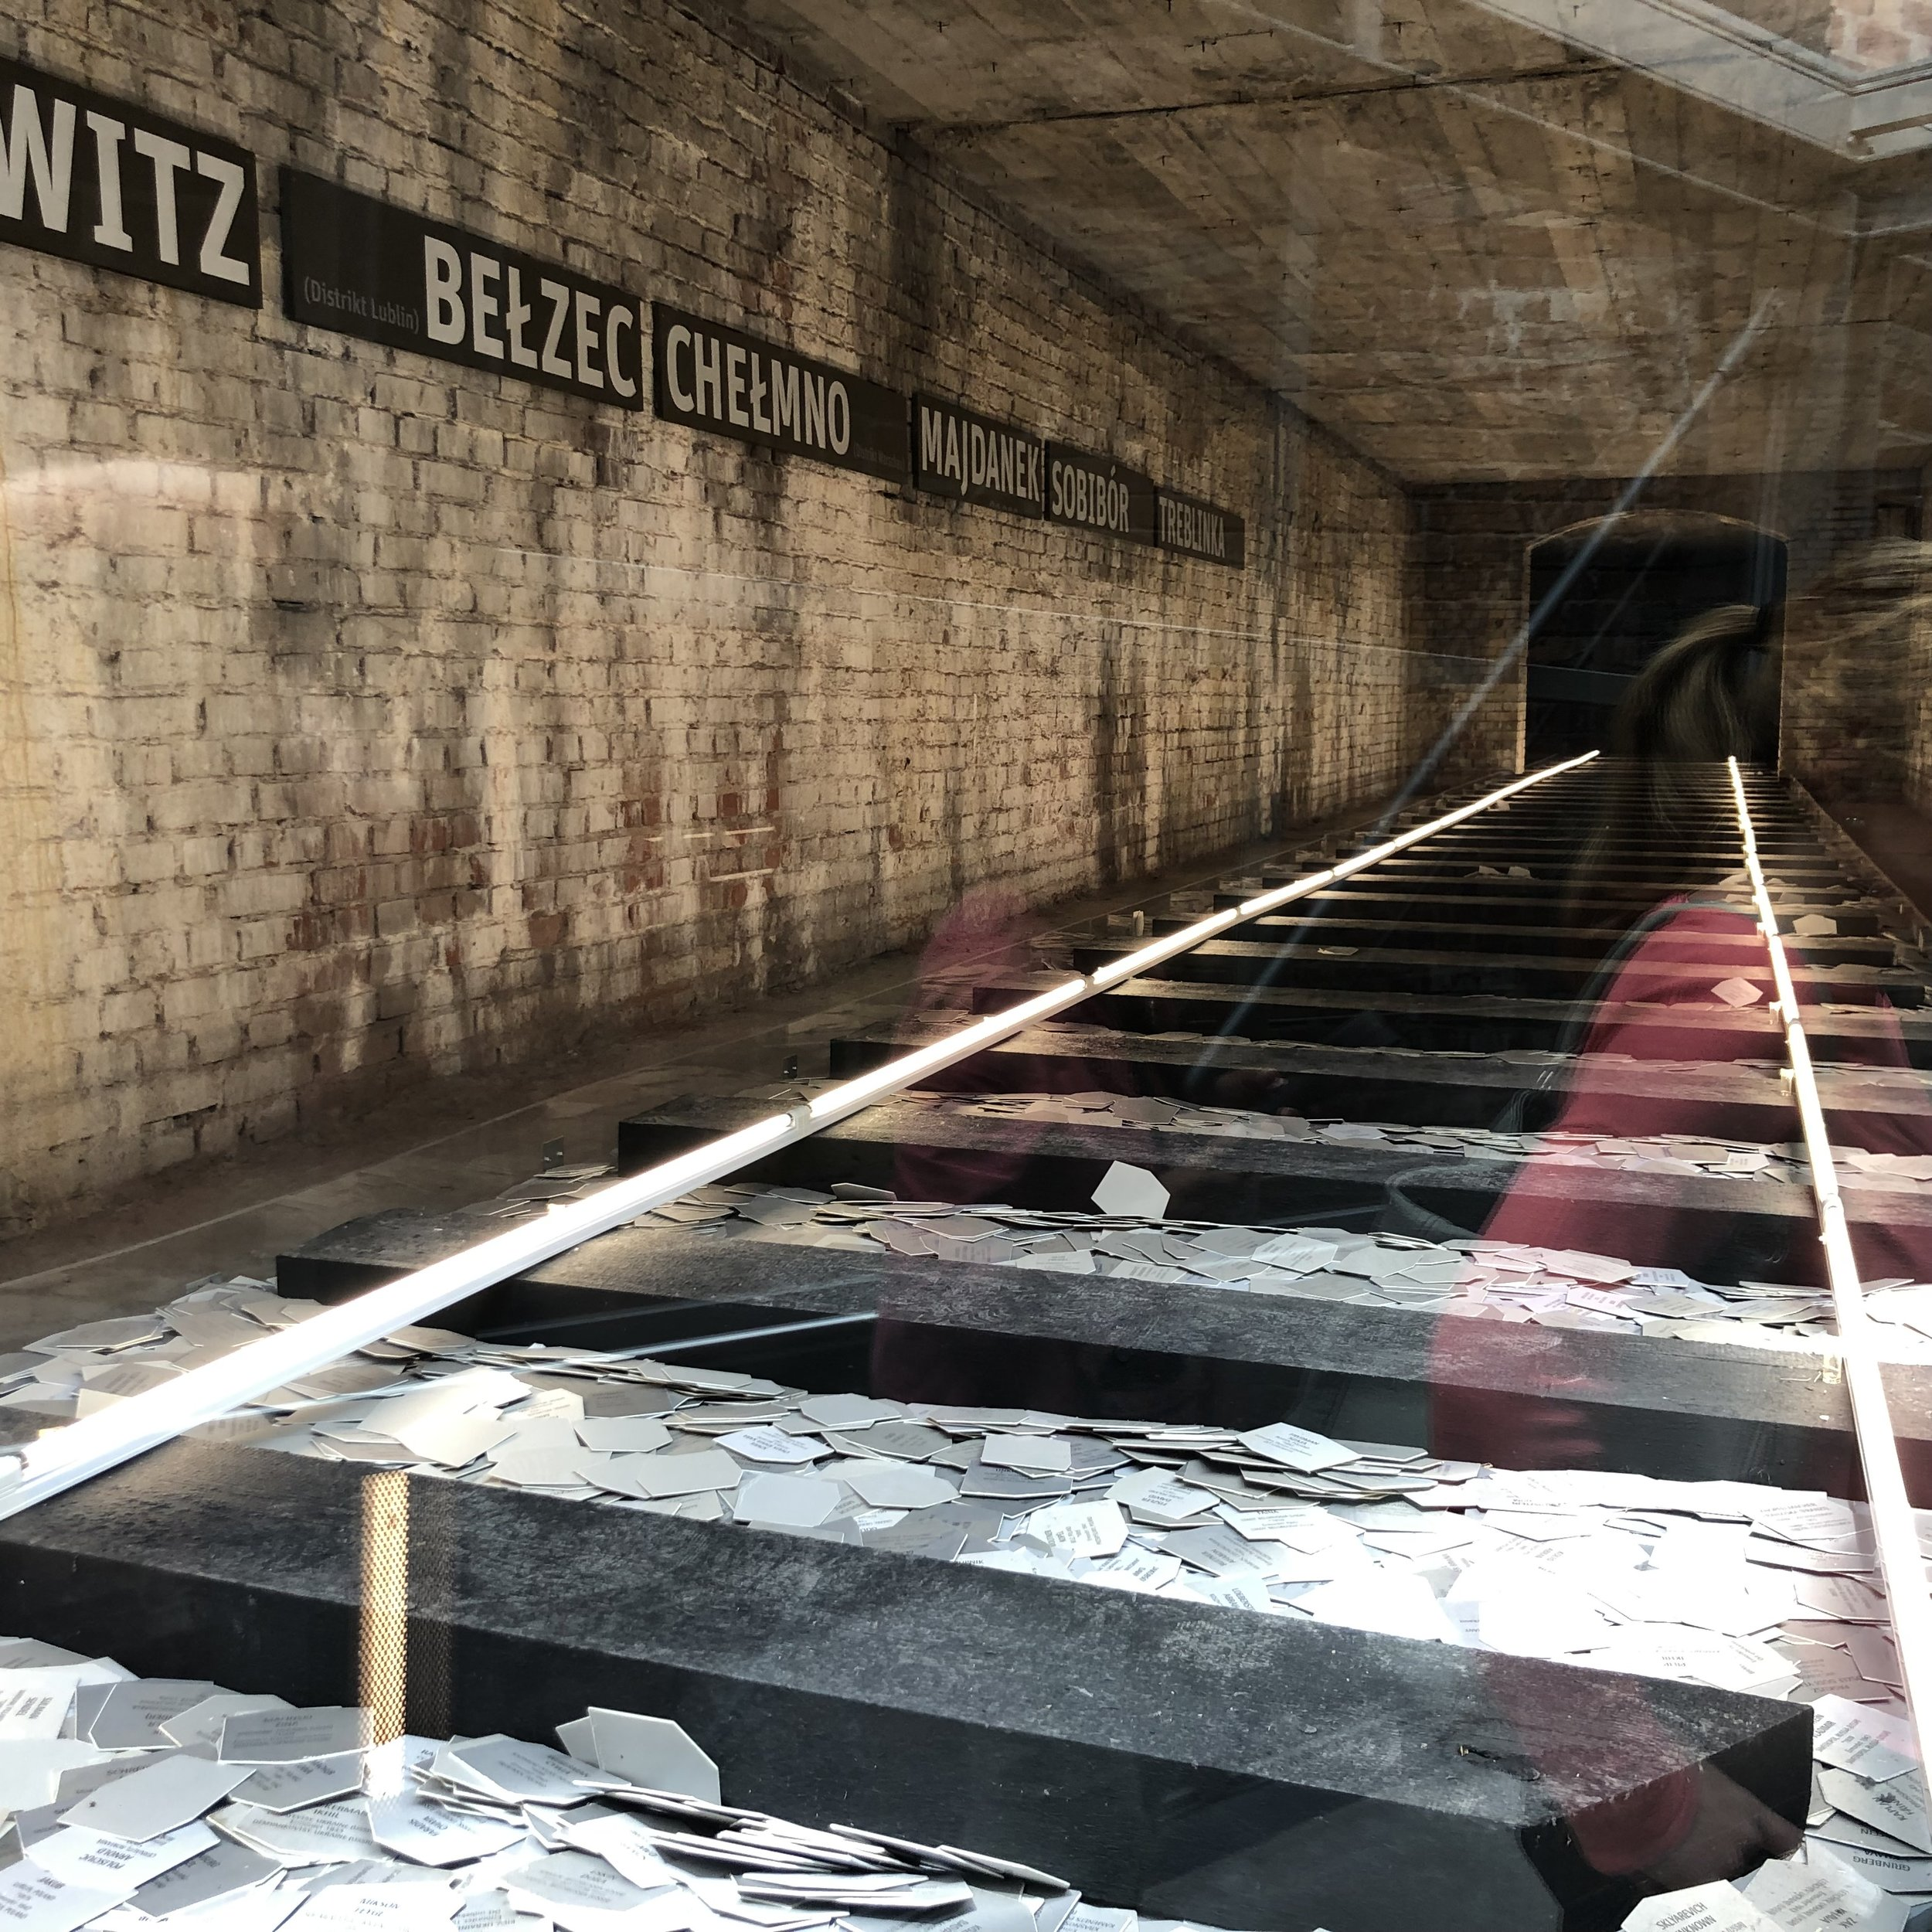 This photo is of a very poignant memorial at the Document Museum it depicts rail lines used to haul Jews and other enemies of the state to the concentration camps. On each card is the name of a person who was murdered by the Nazis. The inscription on the memorial said that there were 30,000 cards representing 30,000 people, which is just a small percentage of the six million Jews who were murdered.